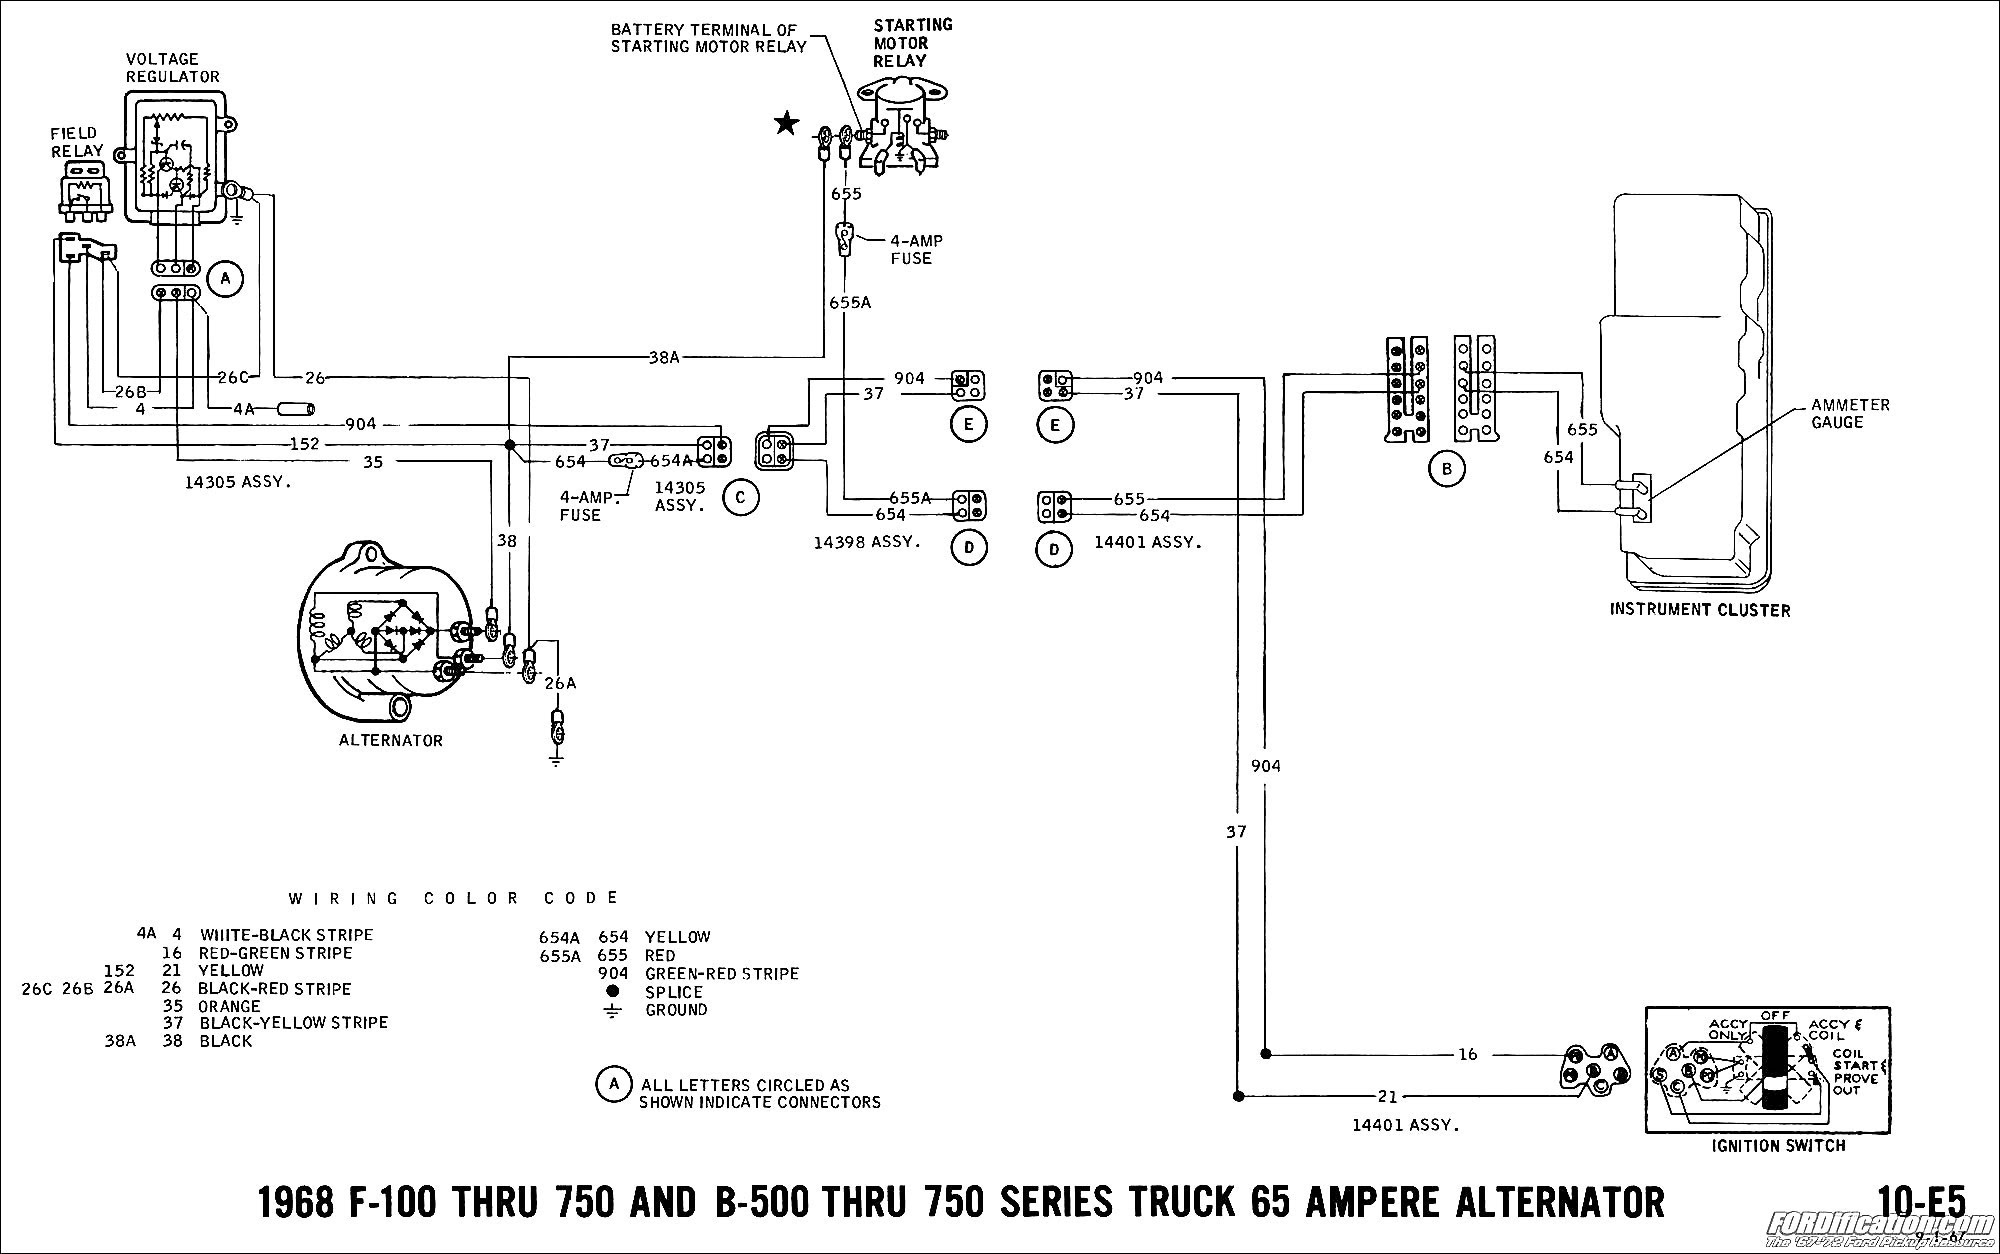 1975 Ford Tractor Wiring Diagram Wiring For Hvac In Every Symbol For Wiring Diagram Schematics